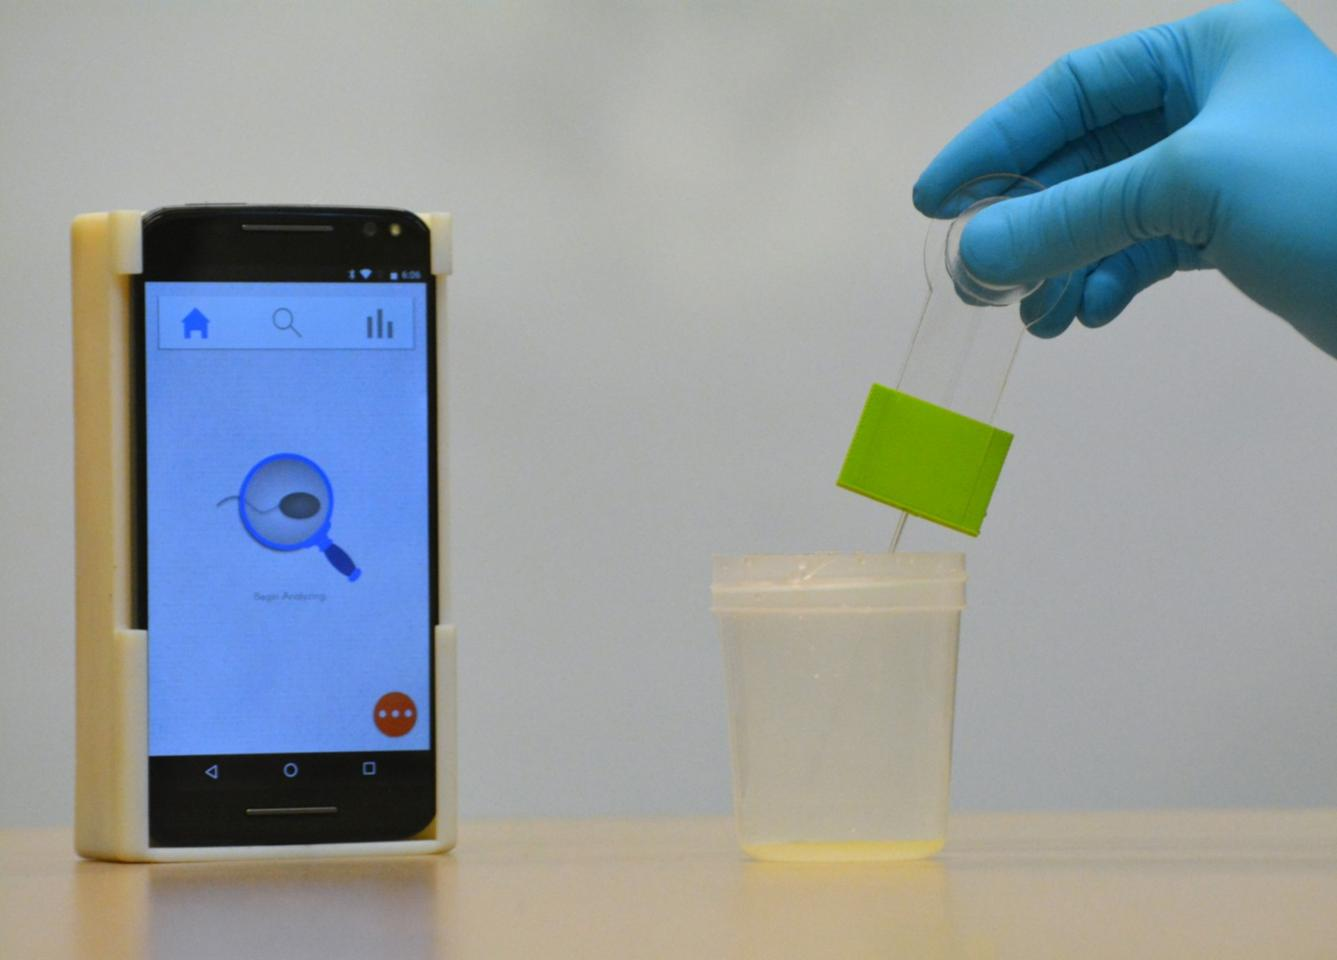 A sample is gathered for analysis in the device